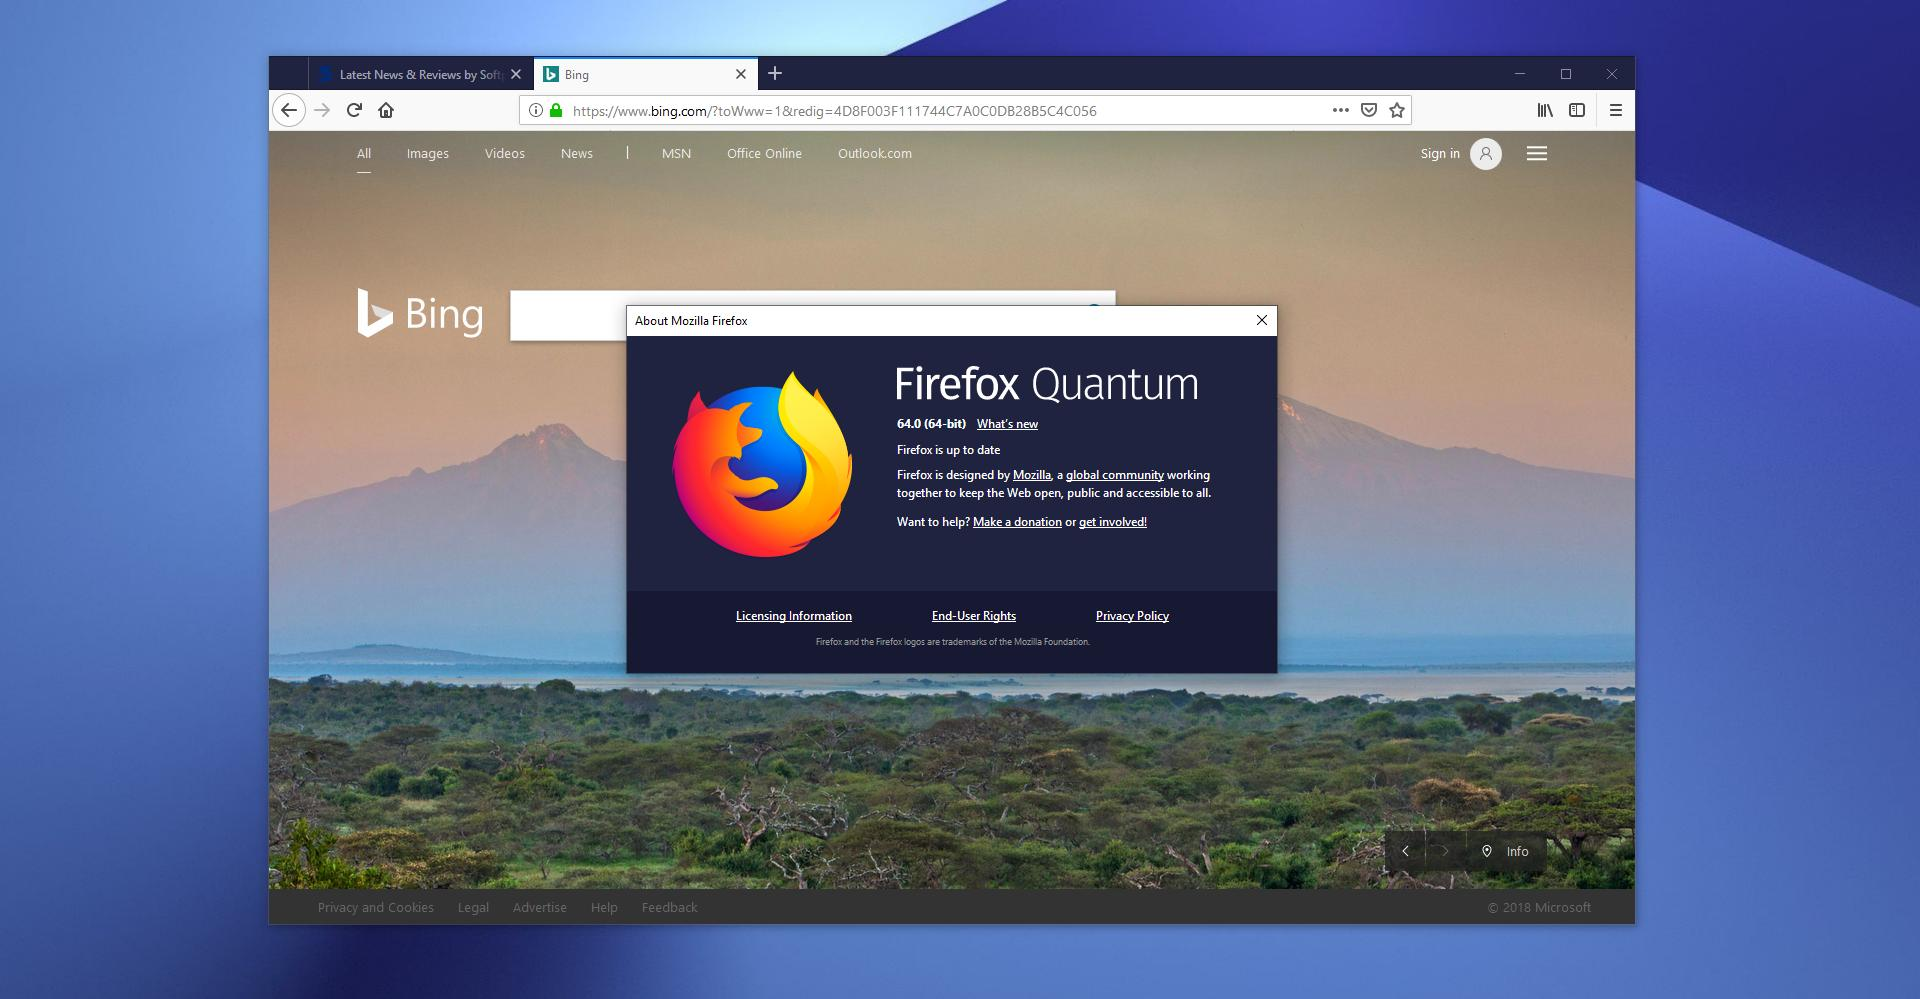 Mozilla firefox 64 now available for download on windows, linux.